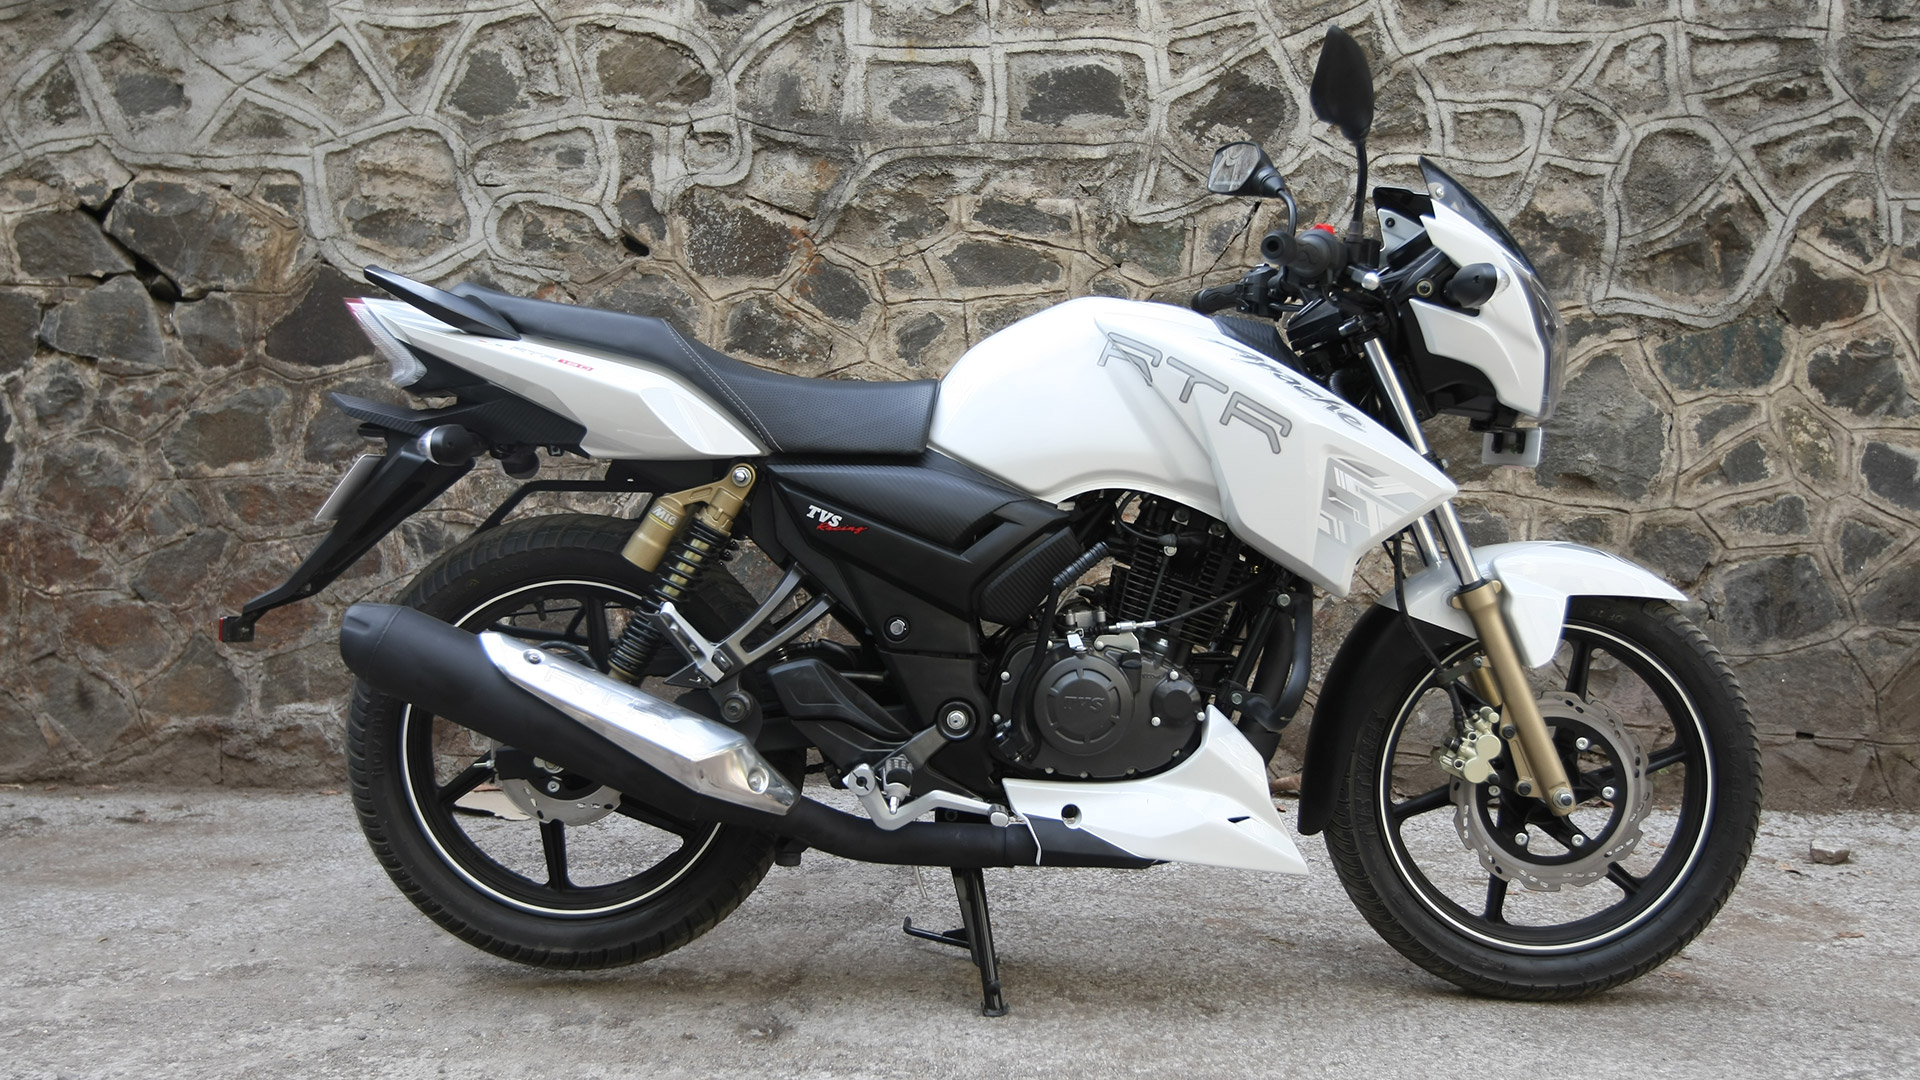 Tvs Apache Rtr 180 2019 Price Mileage Reviews Specification